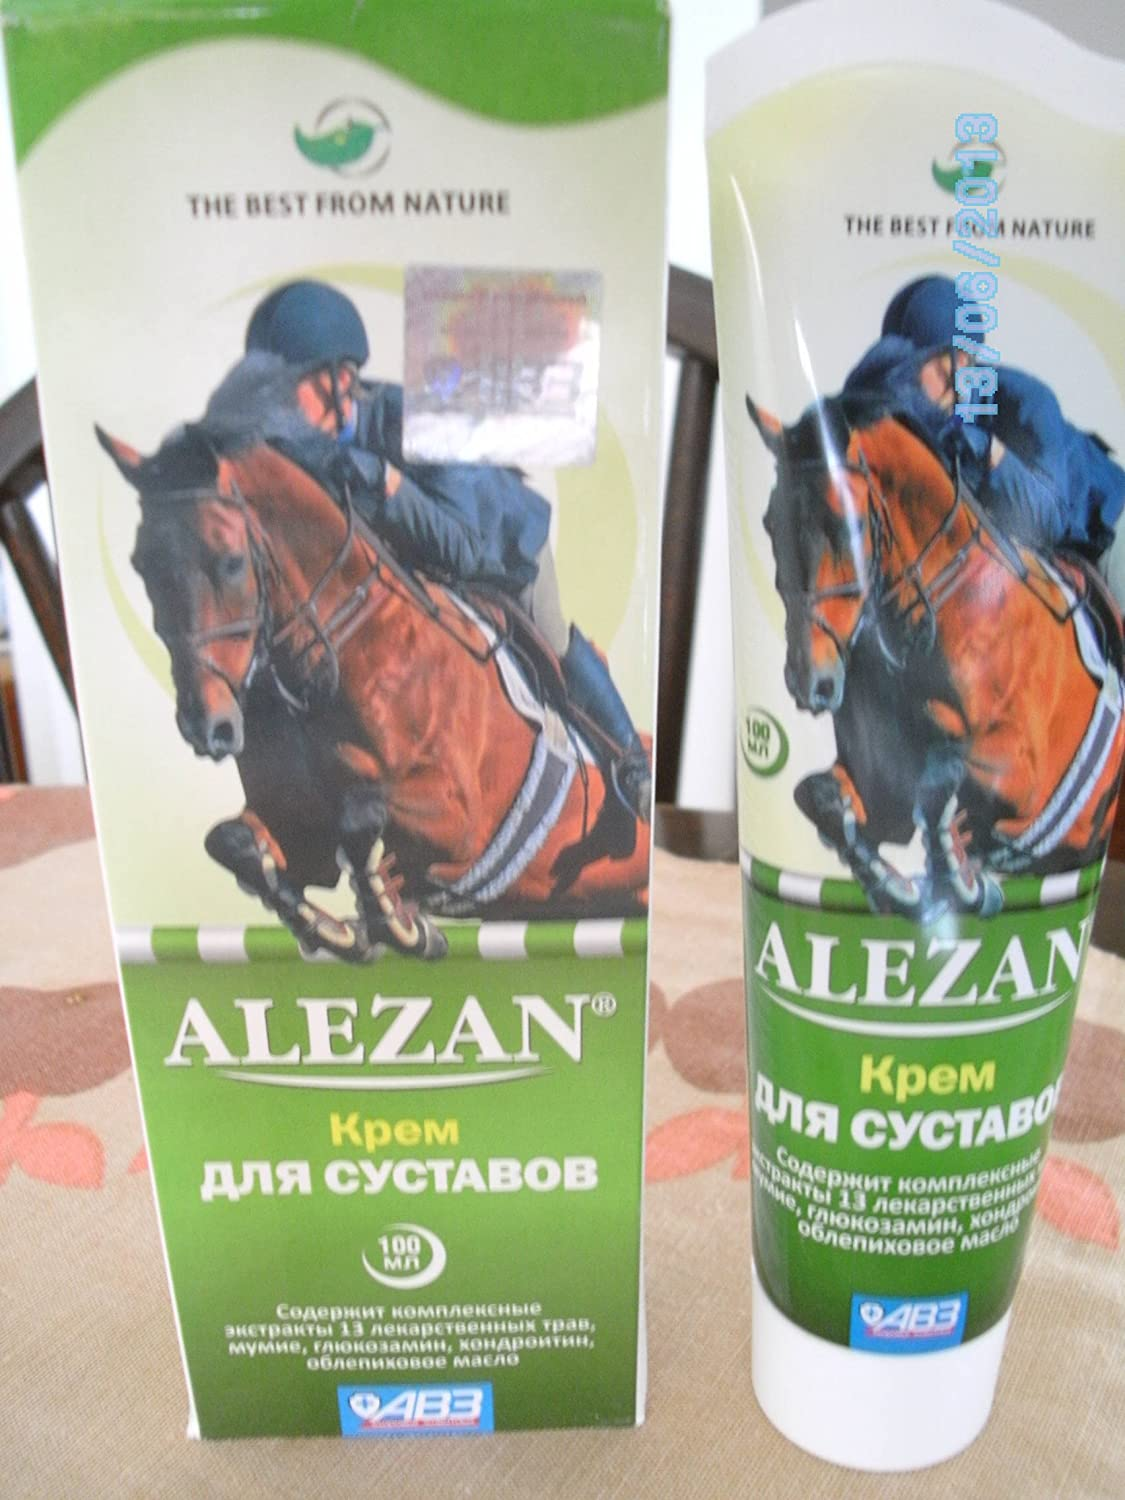 Alezan (joint cream): horse ointment is effective 100